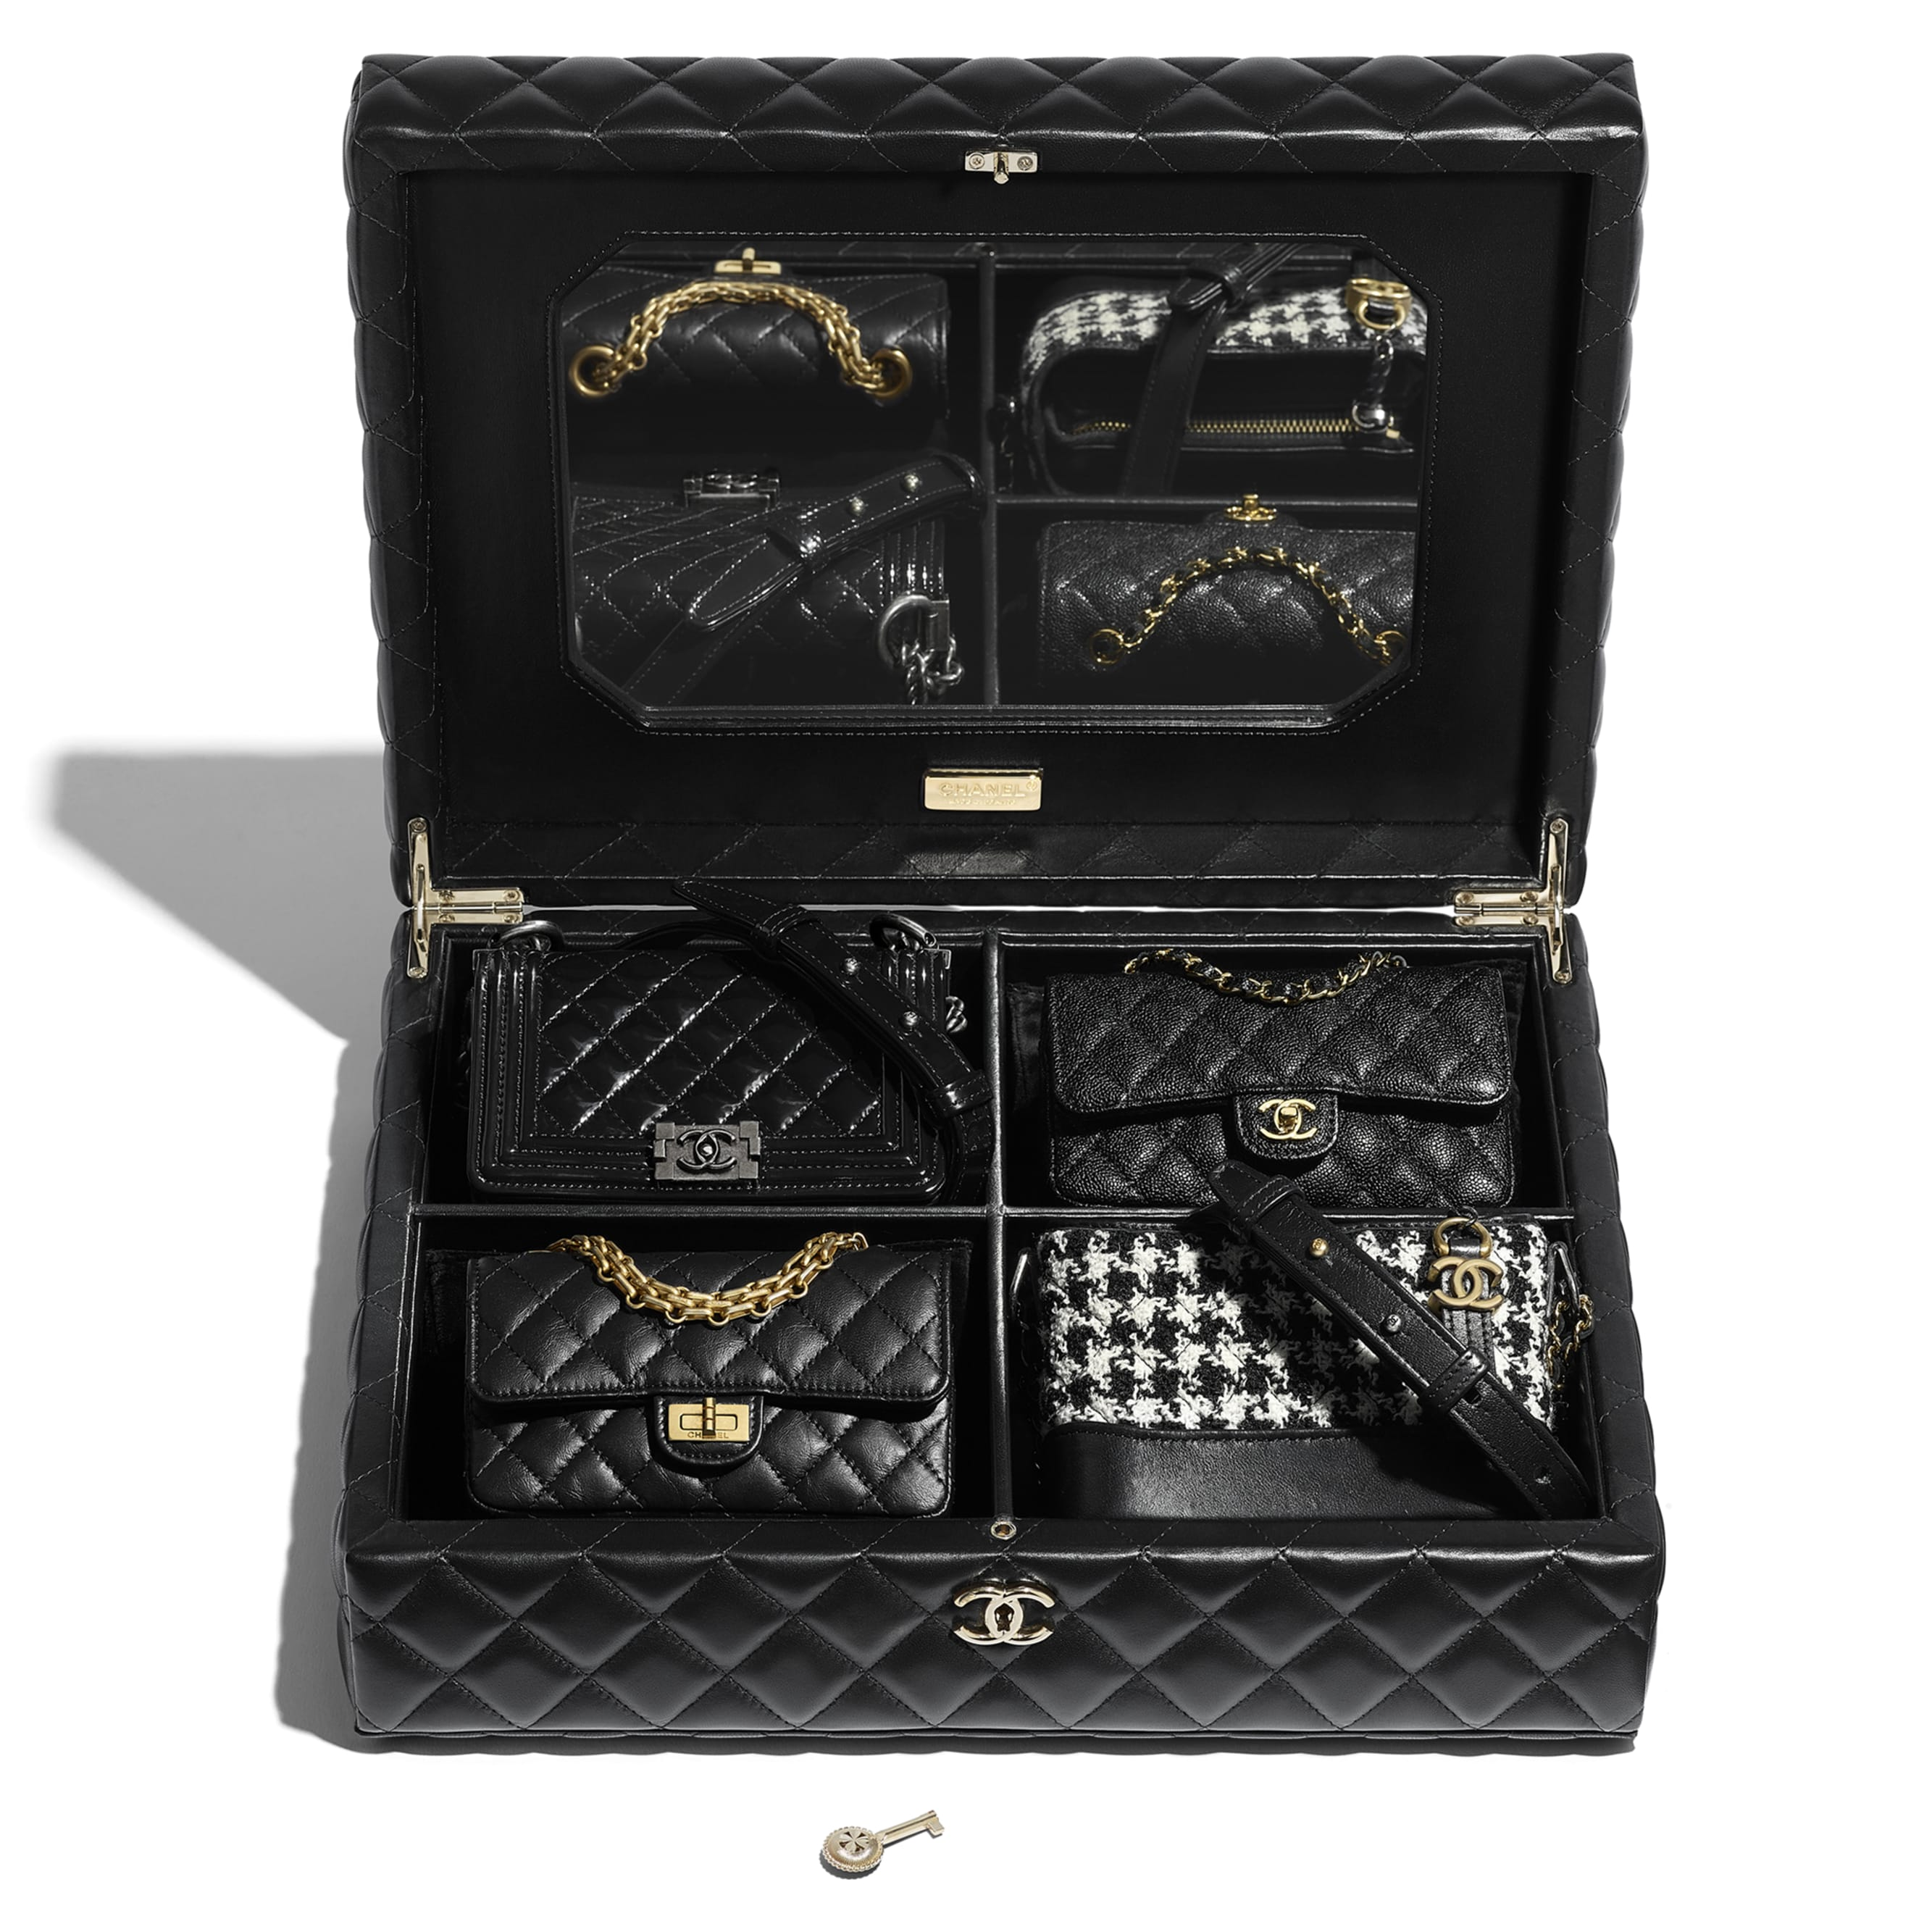 Set of 4 Minis Bags - Black - Lambskin, Calfskin, Tweed, Gold-Tone, Silver-Tone & Ruthenium-Finish Metal - CHANEL - Other view - see standard sized version